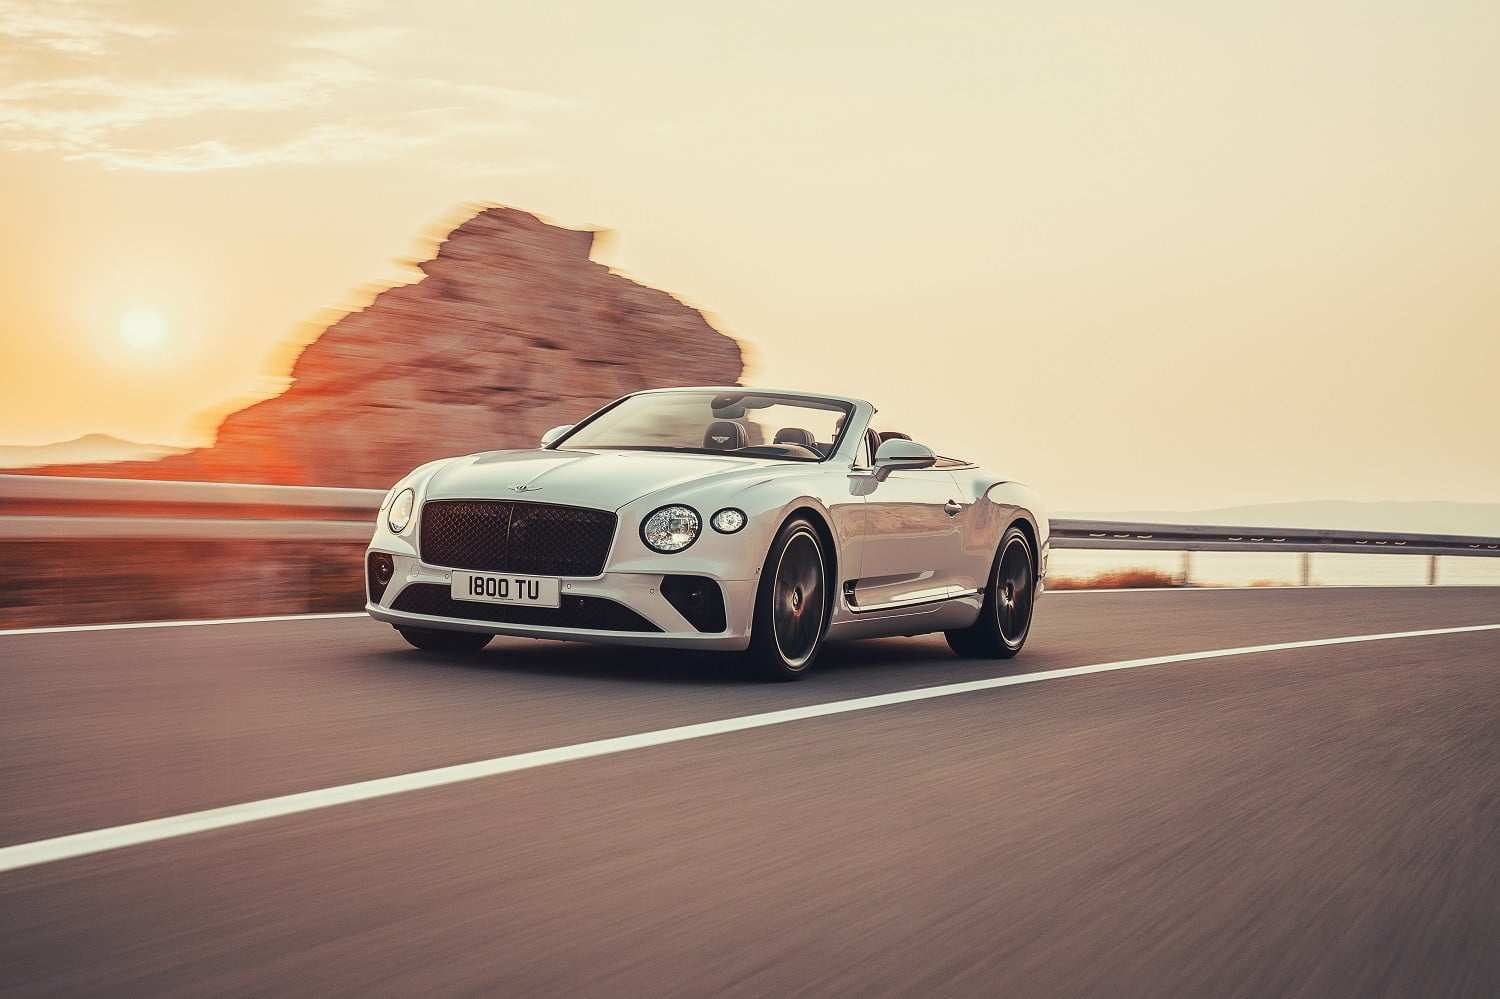 16 All New 2020 Bentley Gtc Price And Release Date